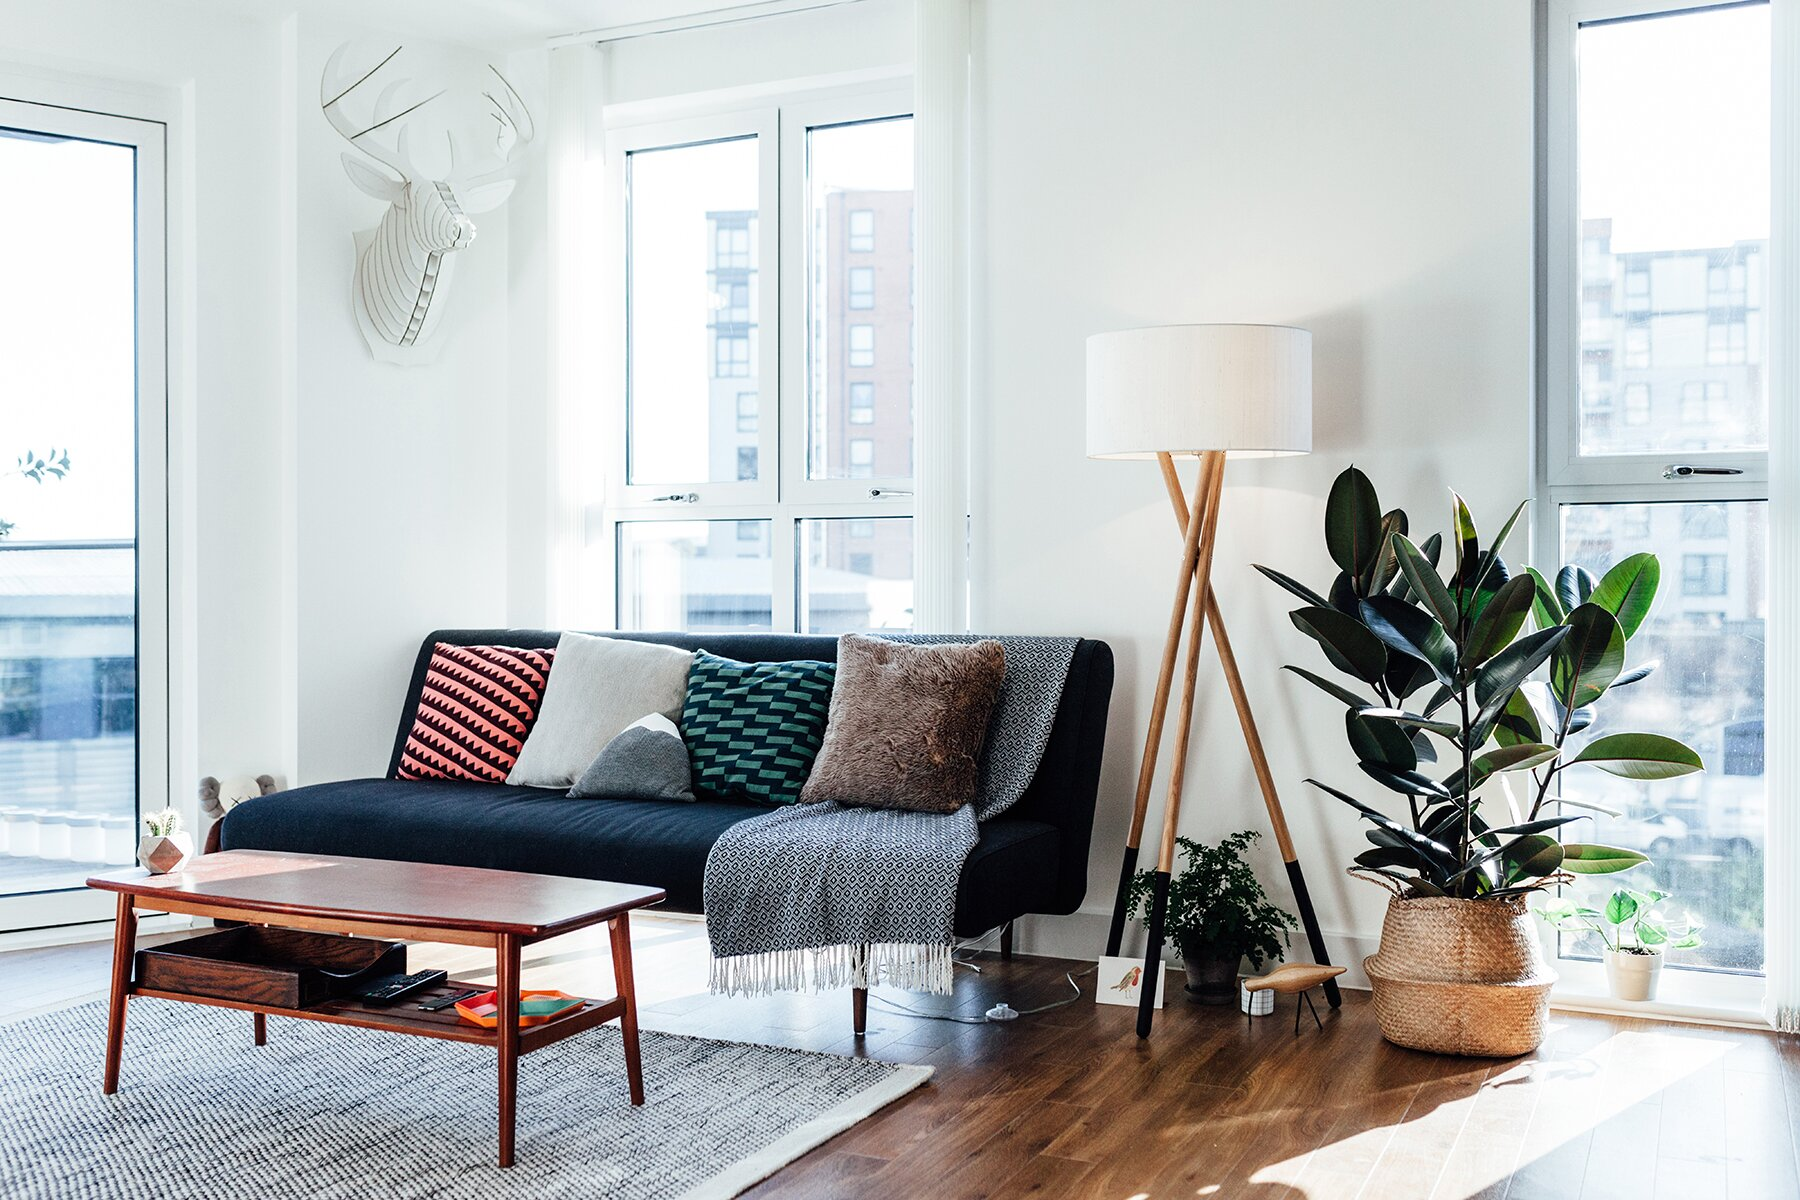 6 Simple Secrets to Finding Your Personal Home Decor Style | Real Simple